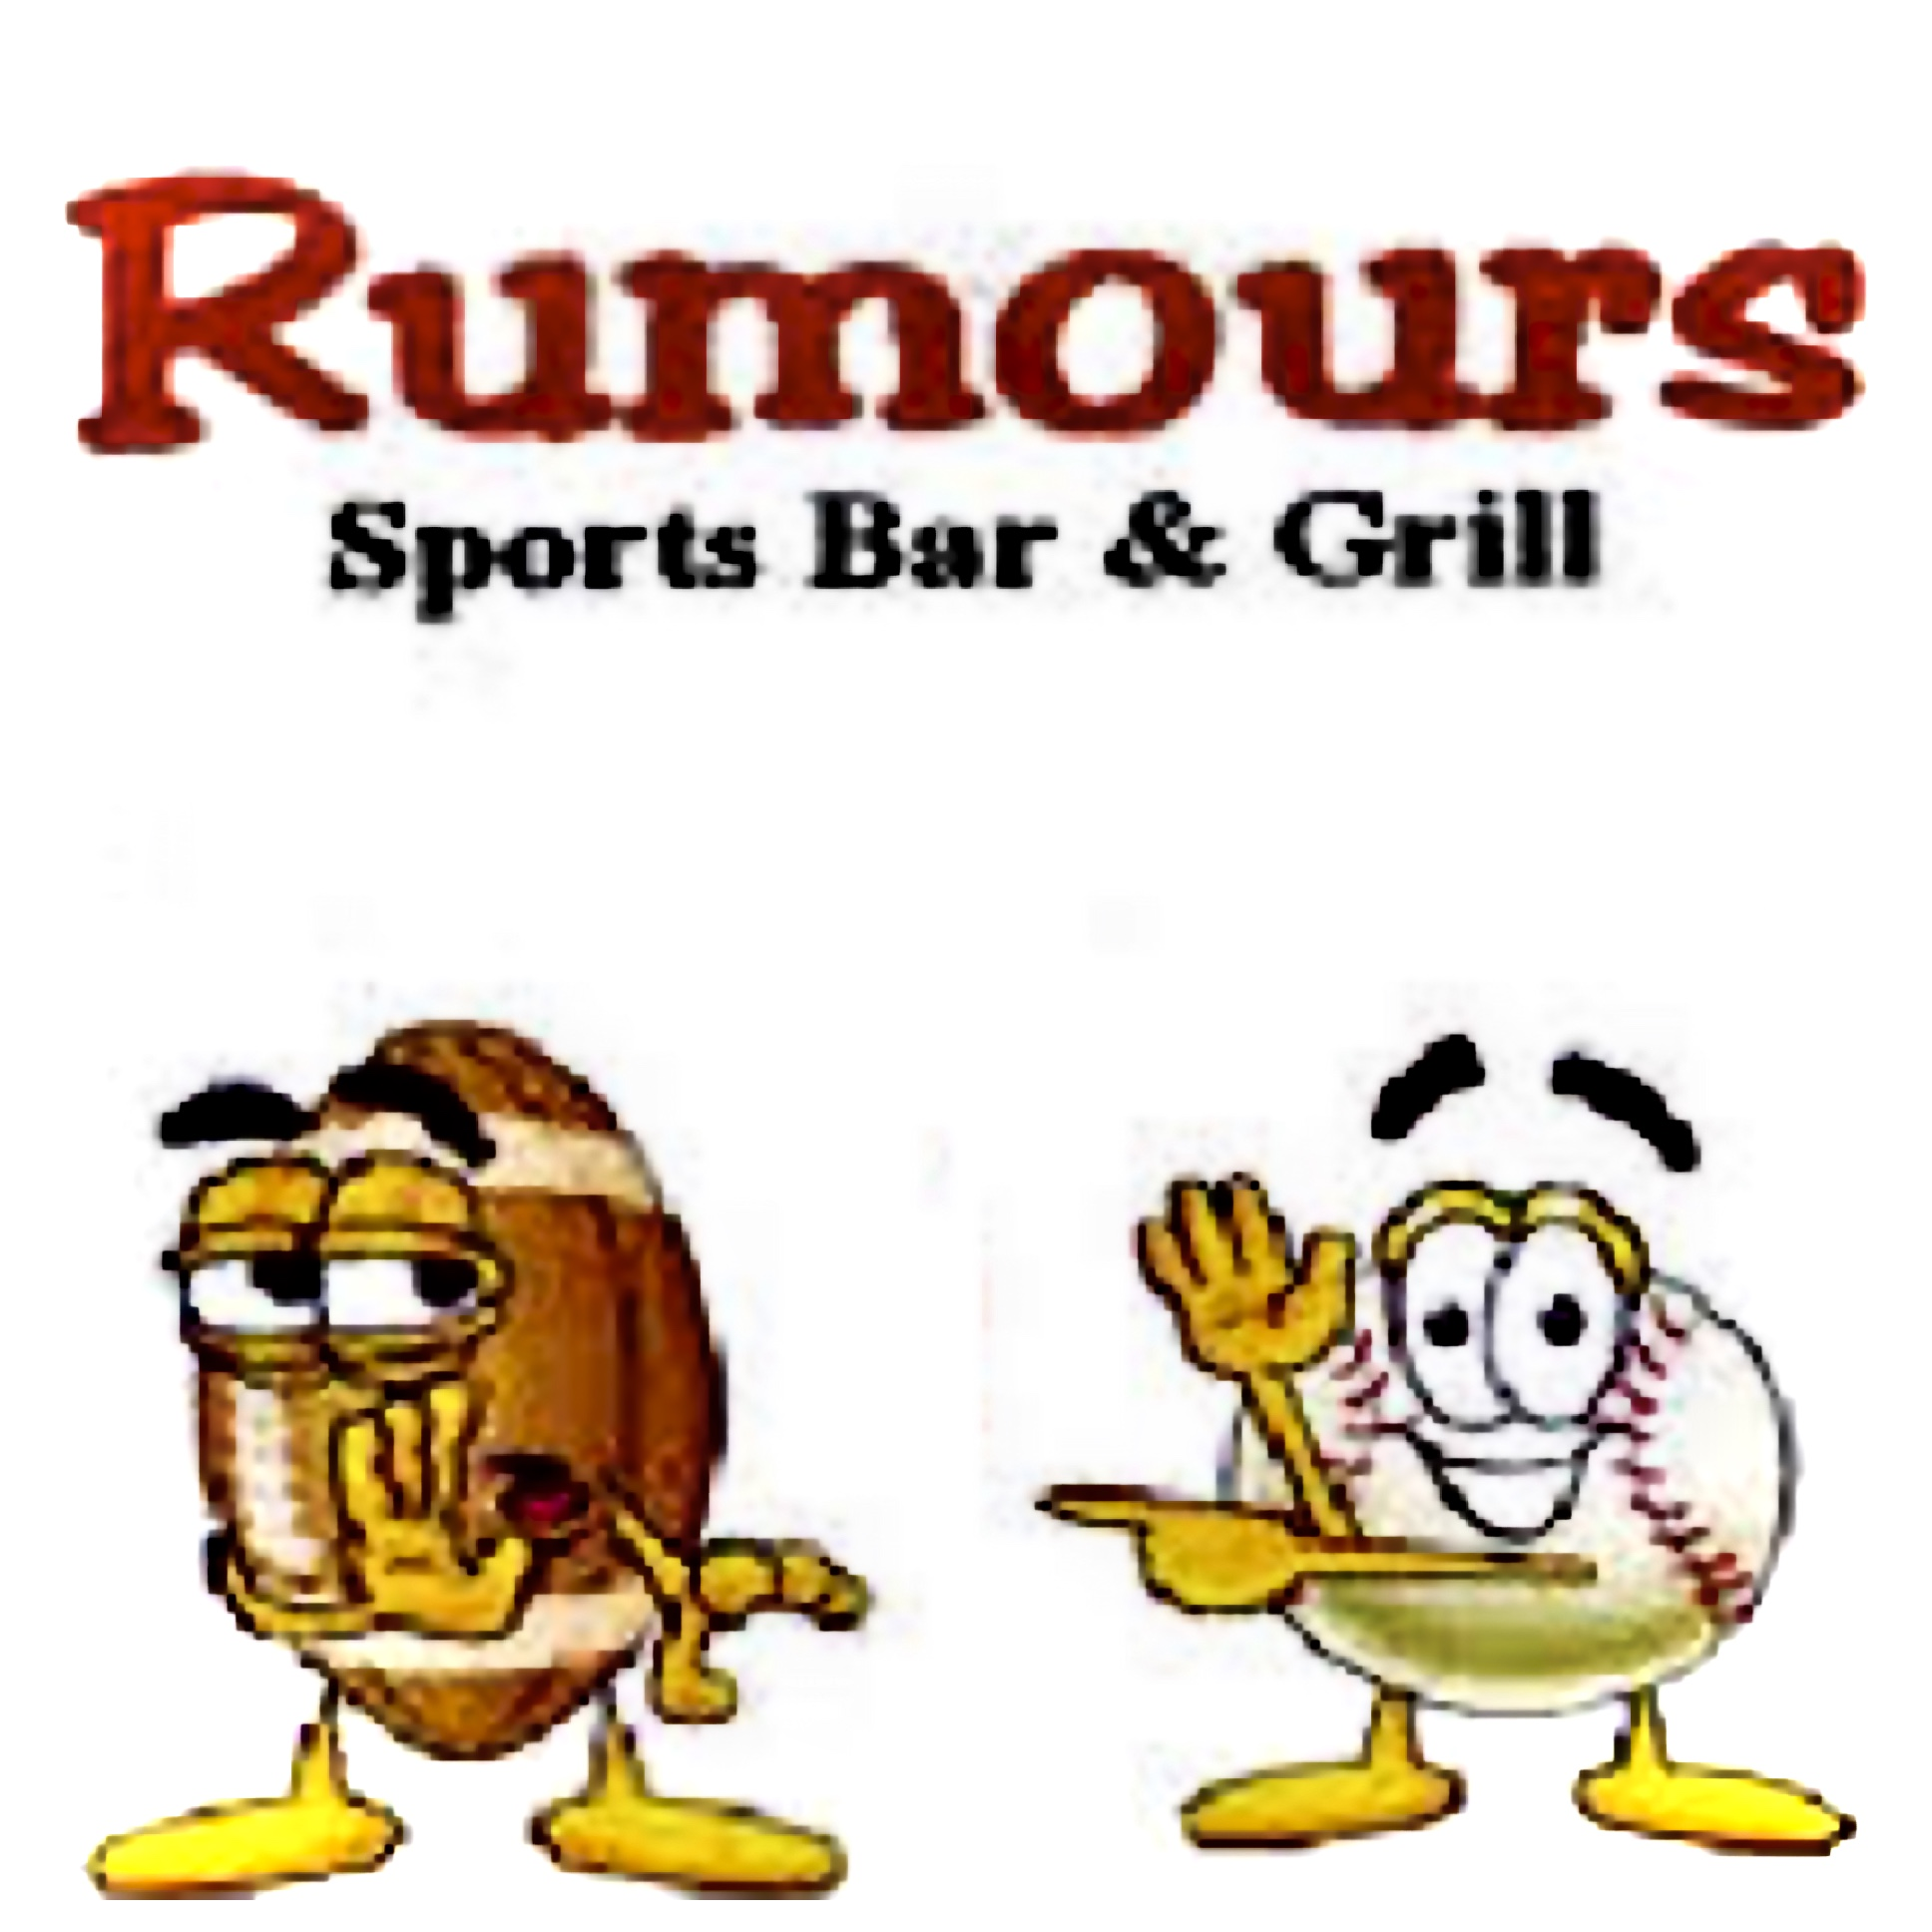 Rumours Sports Bar & Grill